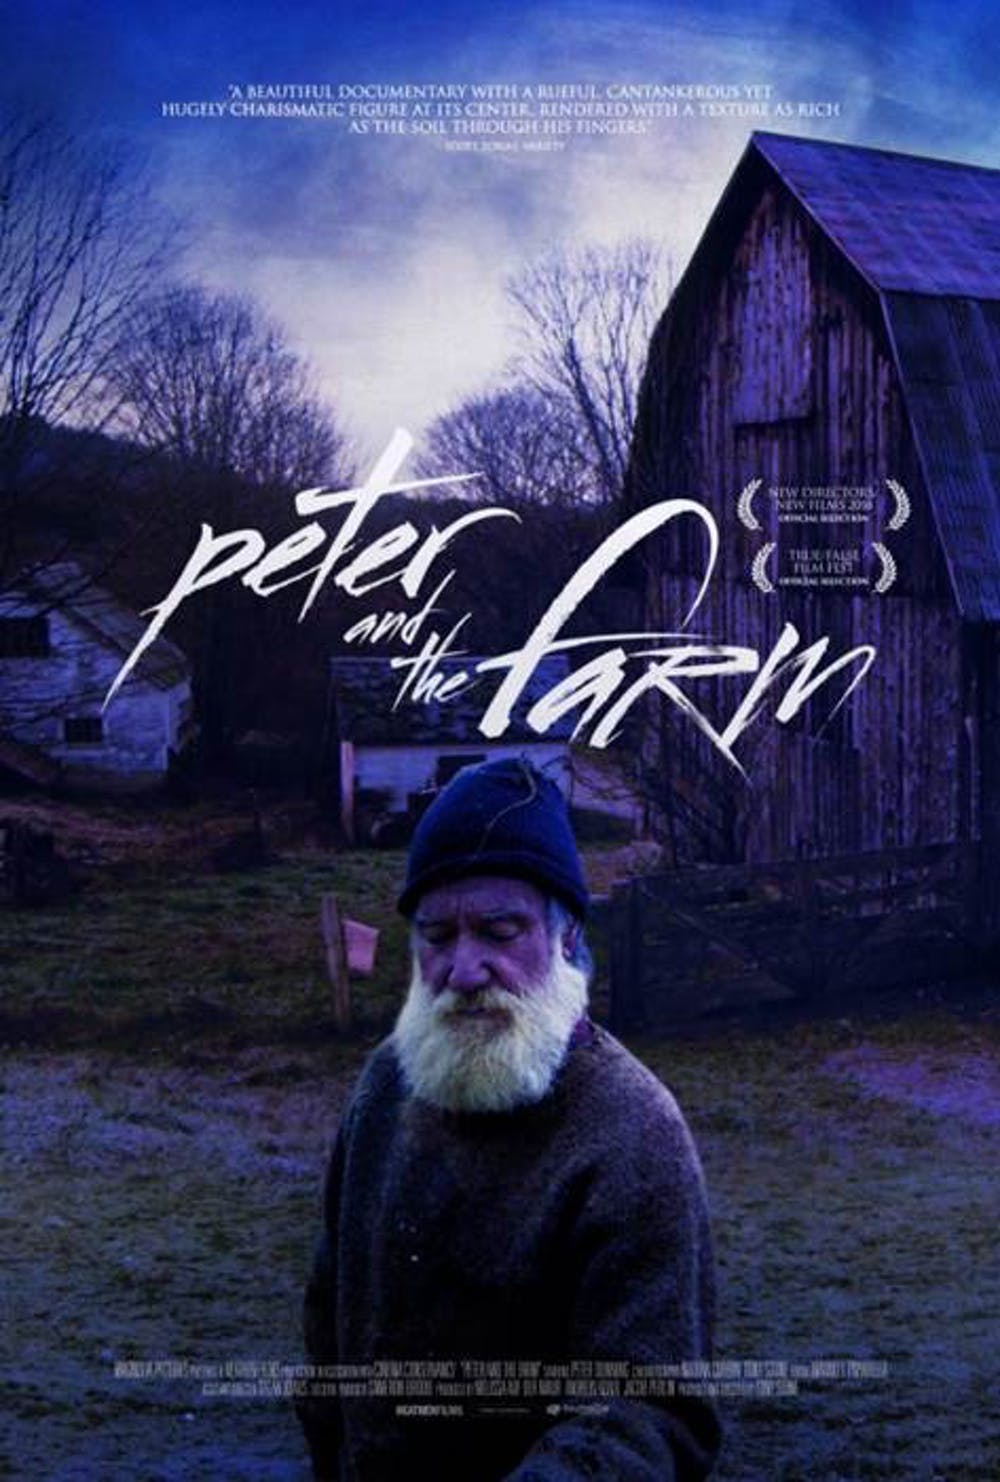 """Review: """"Peter and the Farm"""""""